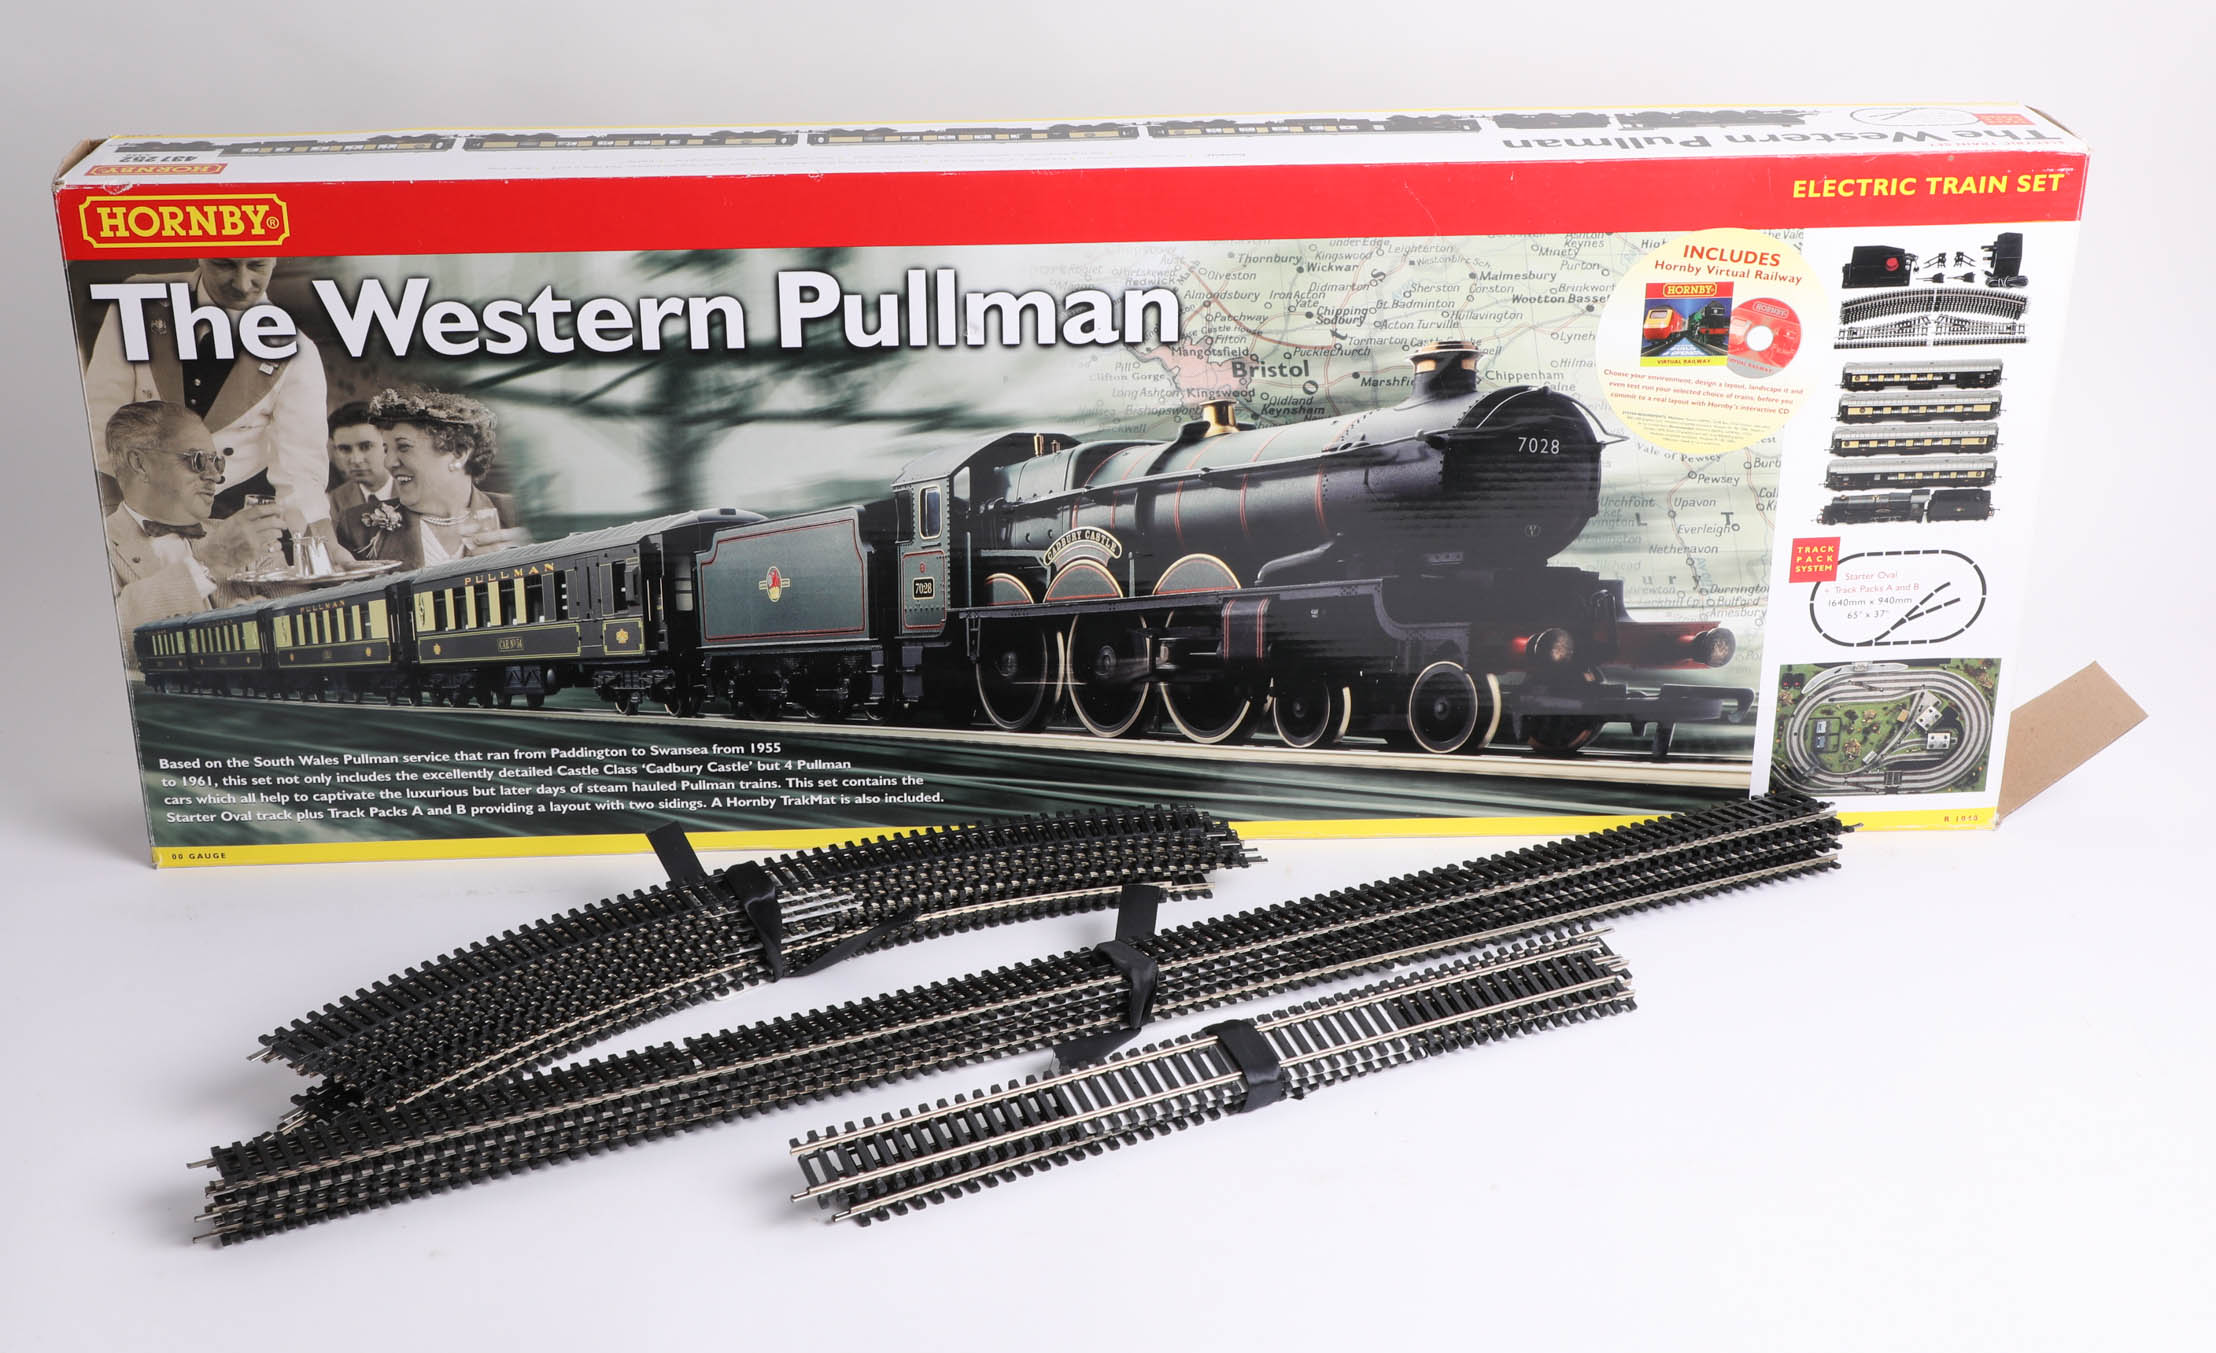 Lot 013 - A Hornby train set 'The Western Pullman', including one locomotive, four carriages, a coal cart